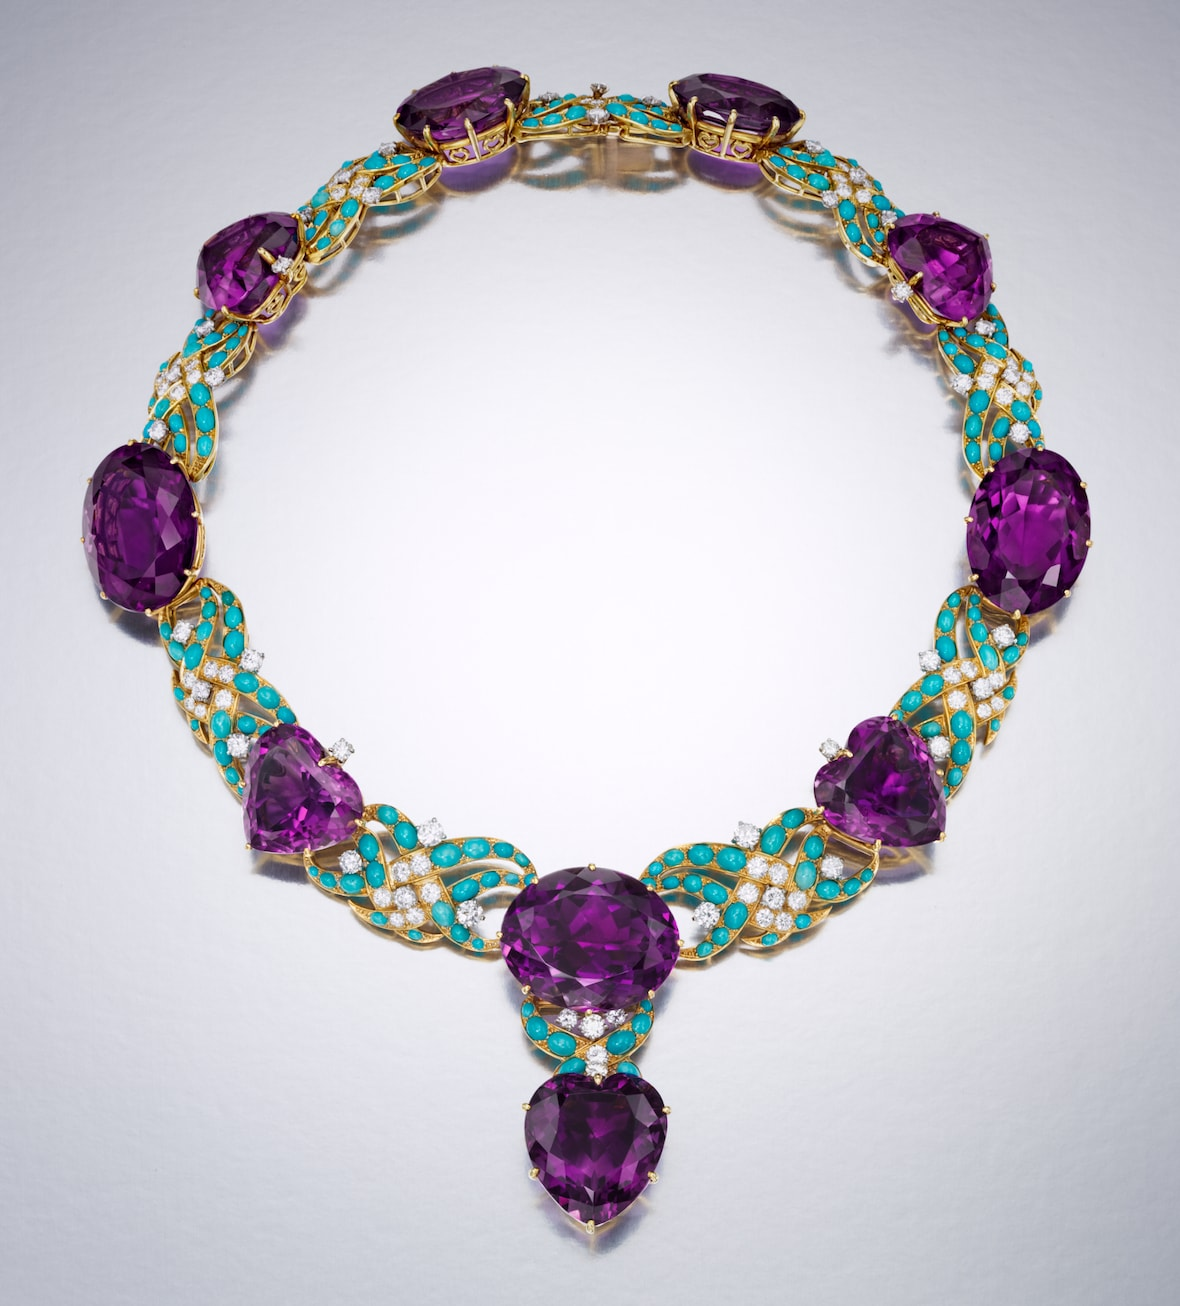 Cartier-turquoise-and-amethyst-necklace